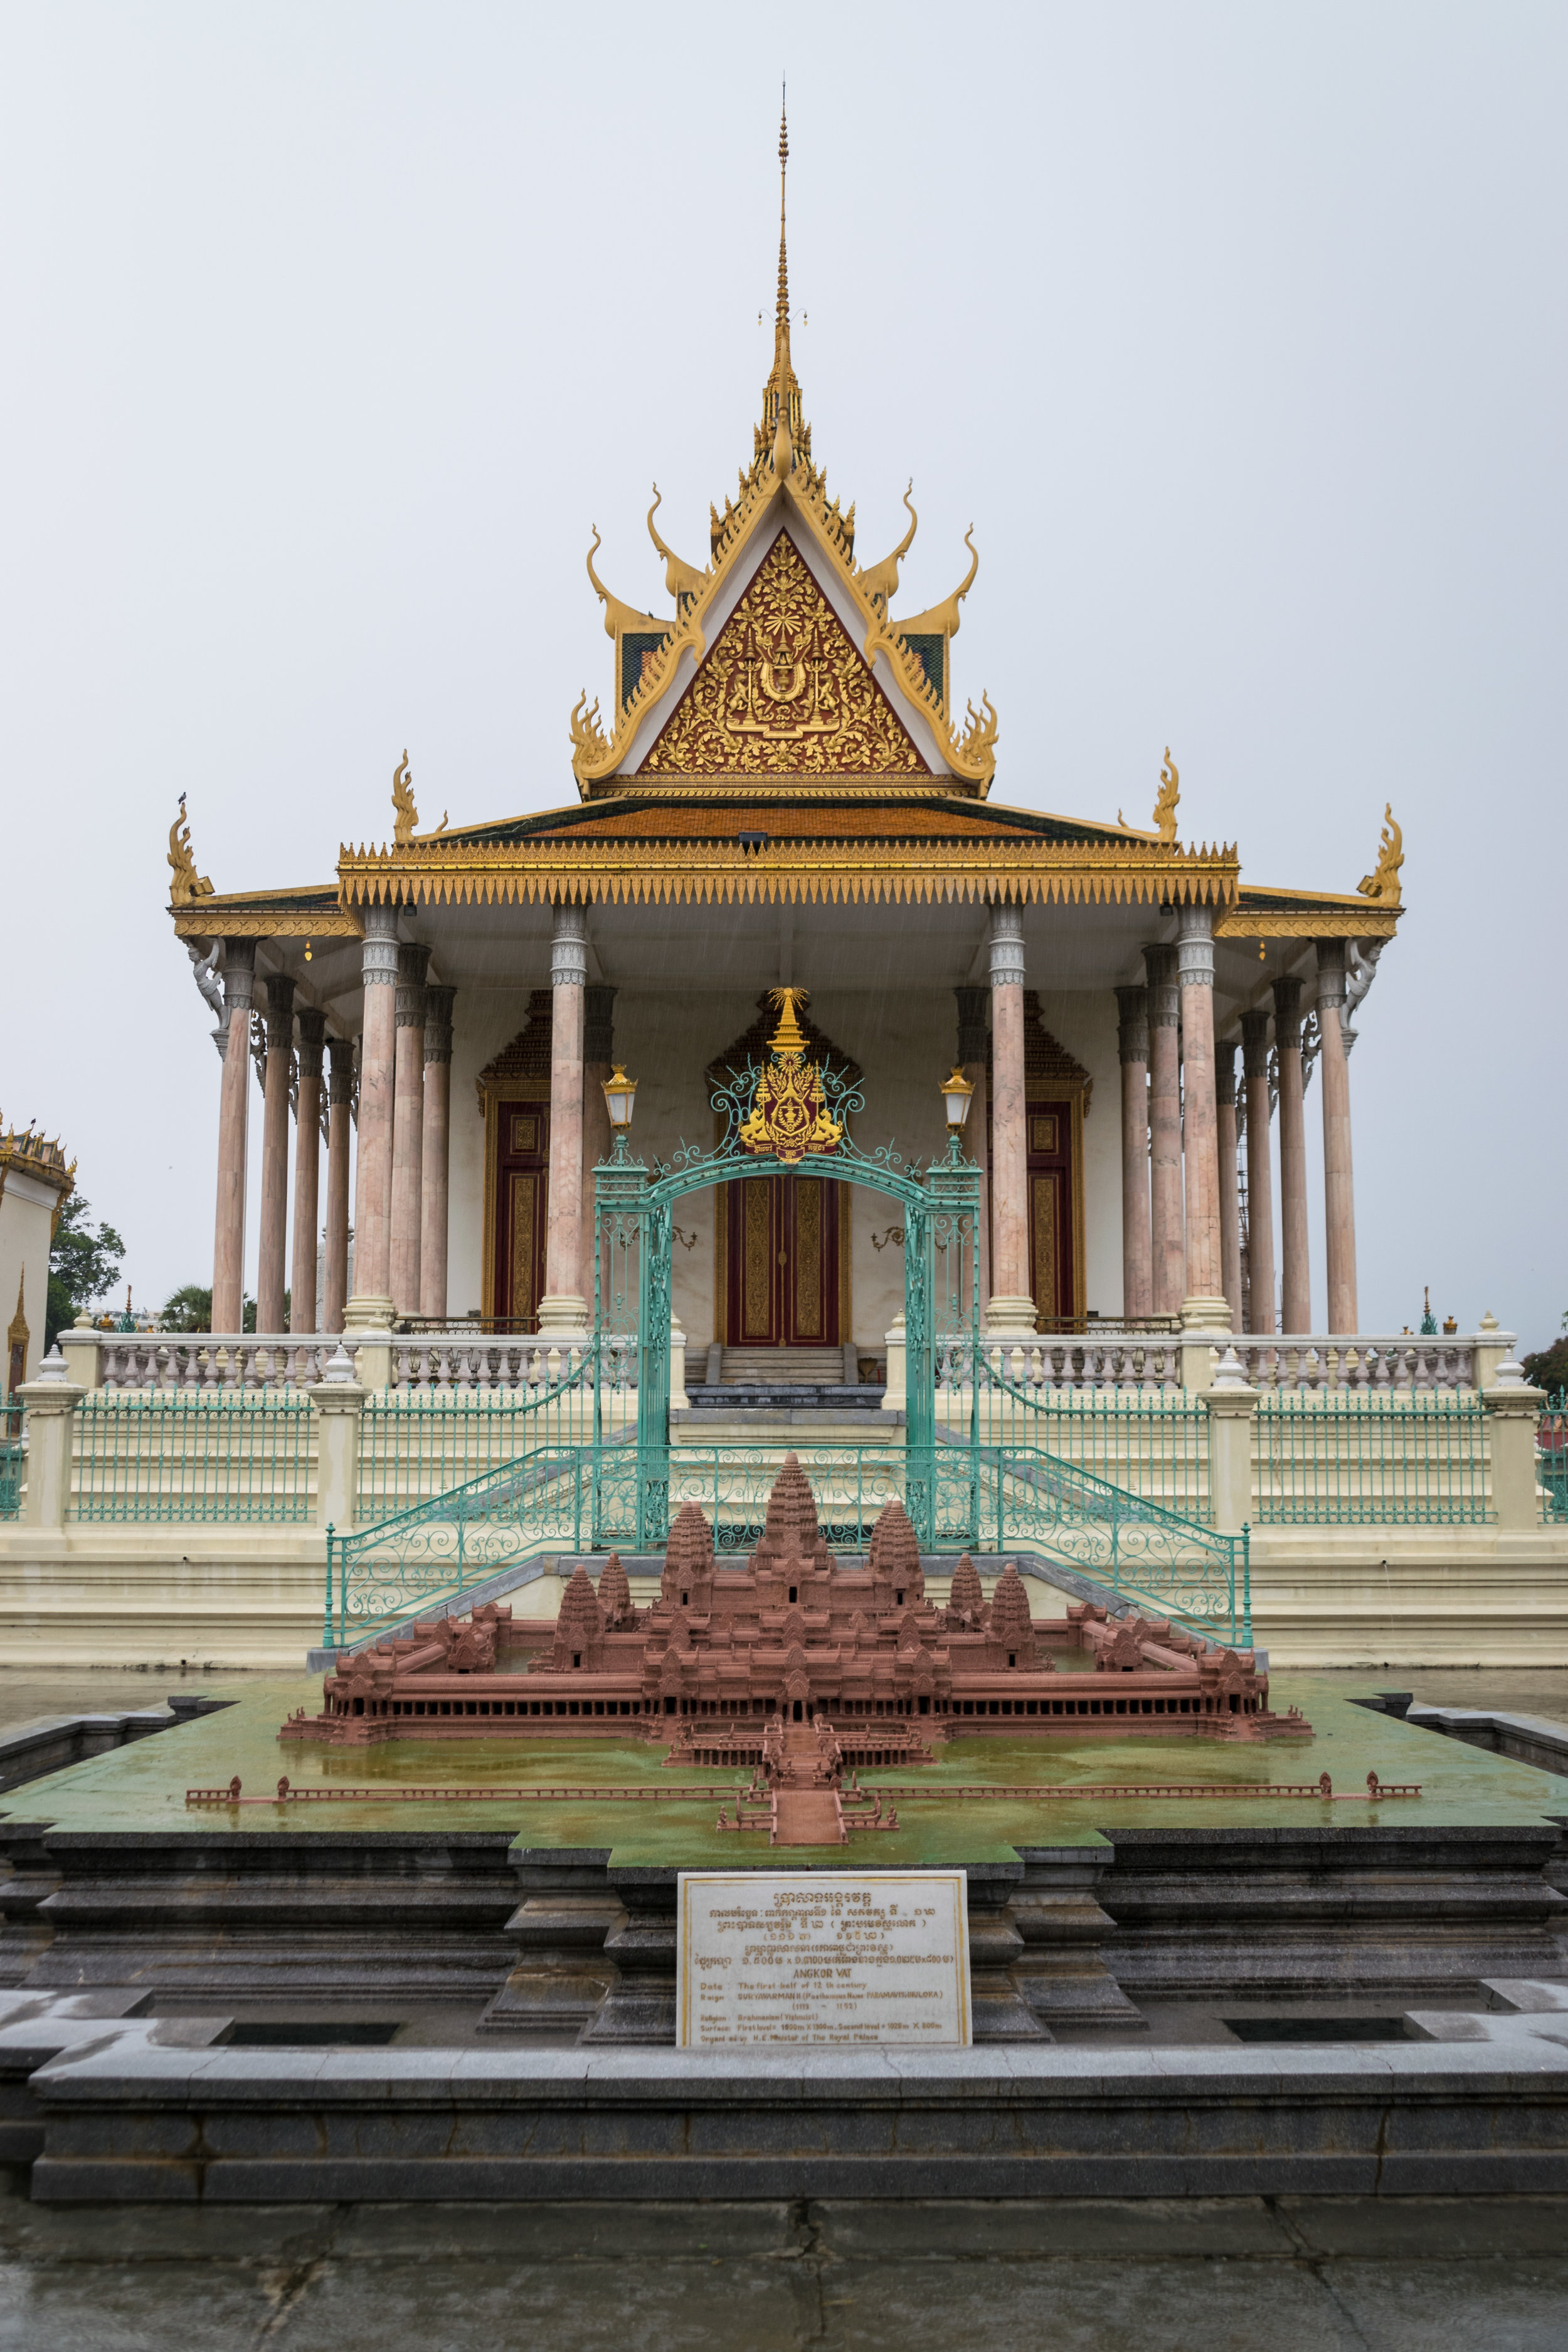 the Silver Pagoda, or Temple of the Emerald Buddha